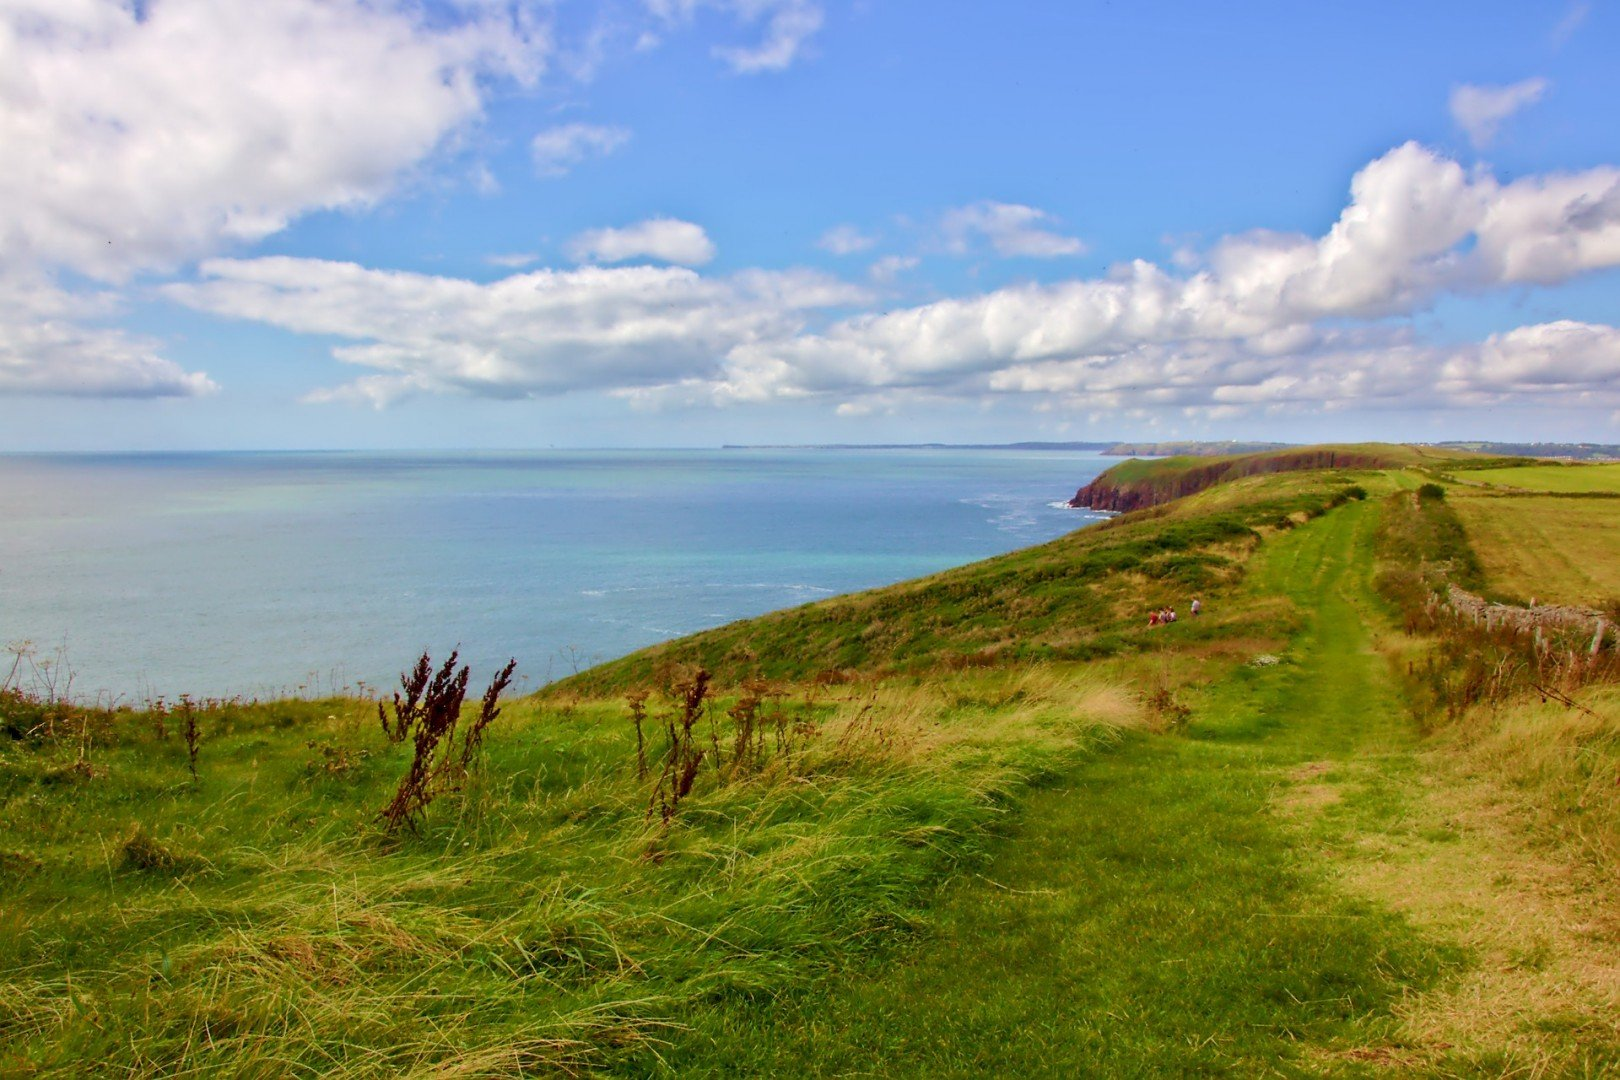 On the Clifftops at the edge of the World on Caldey Island, near Tenby in Pembrokeshire.